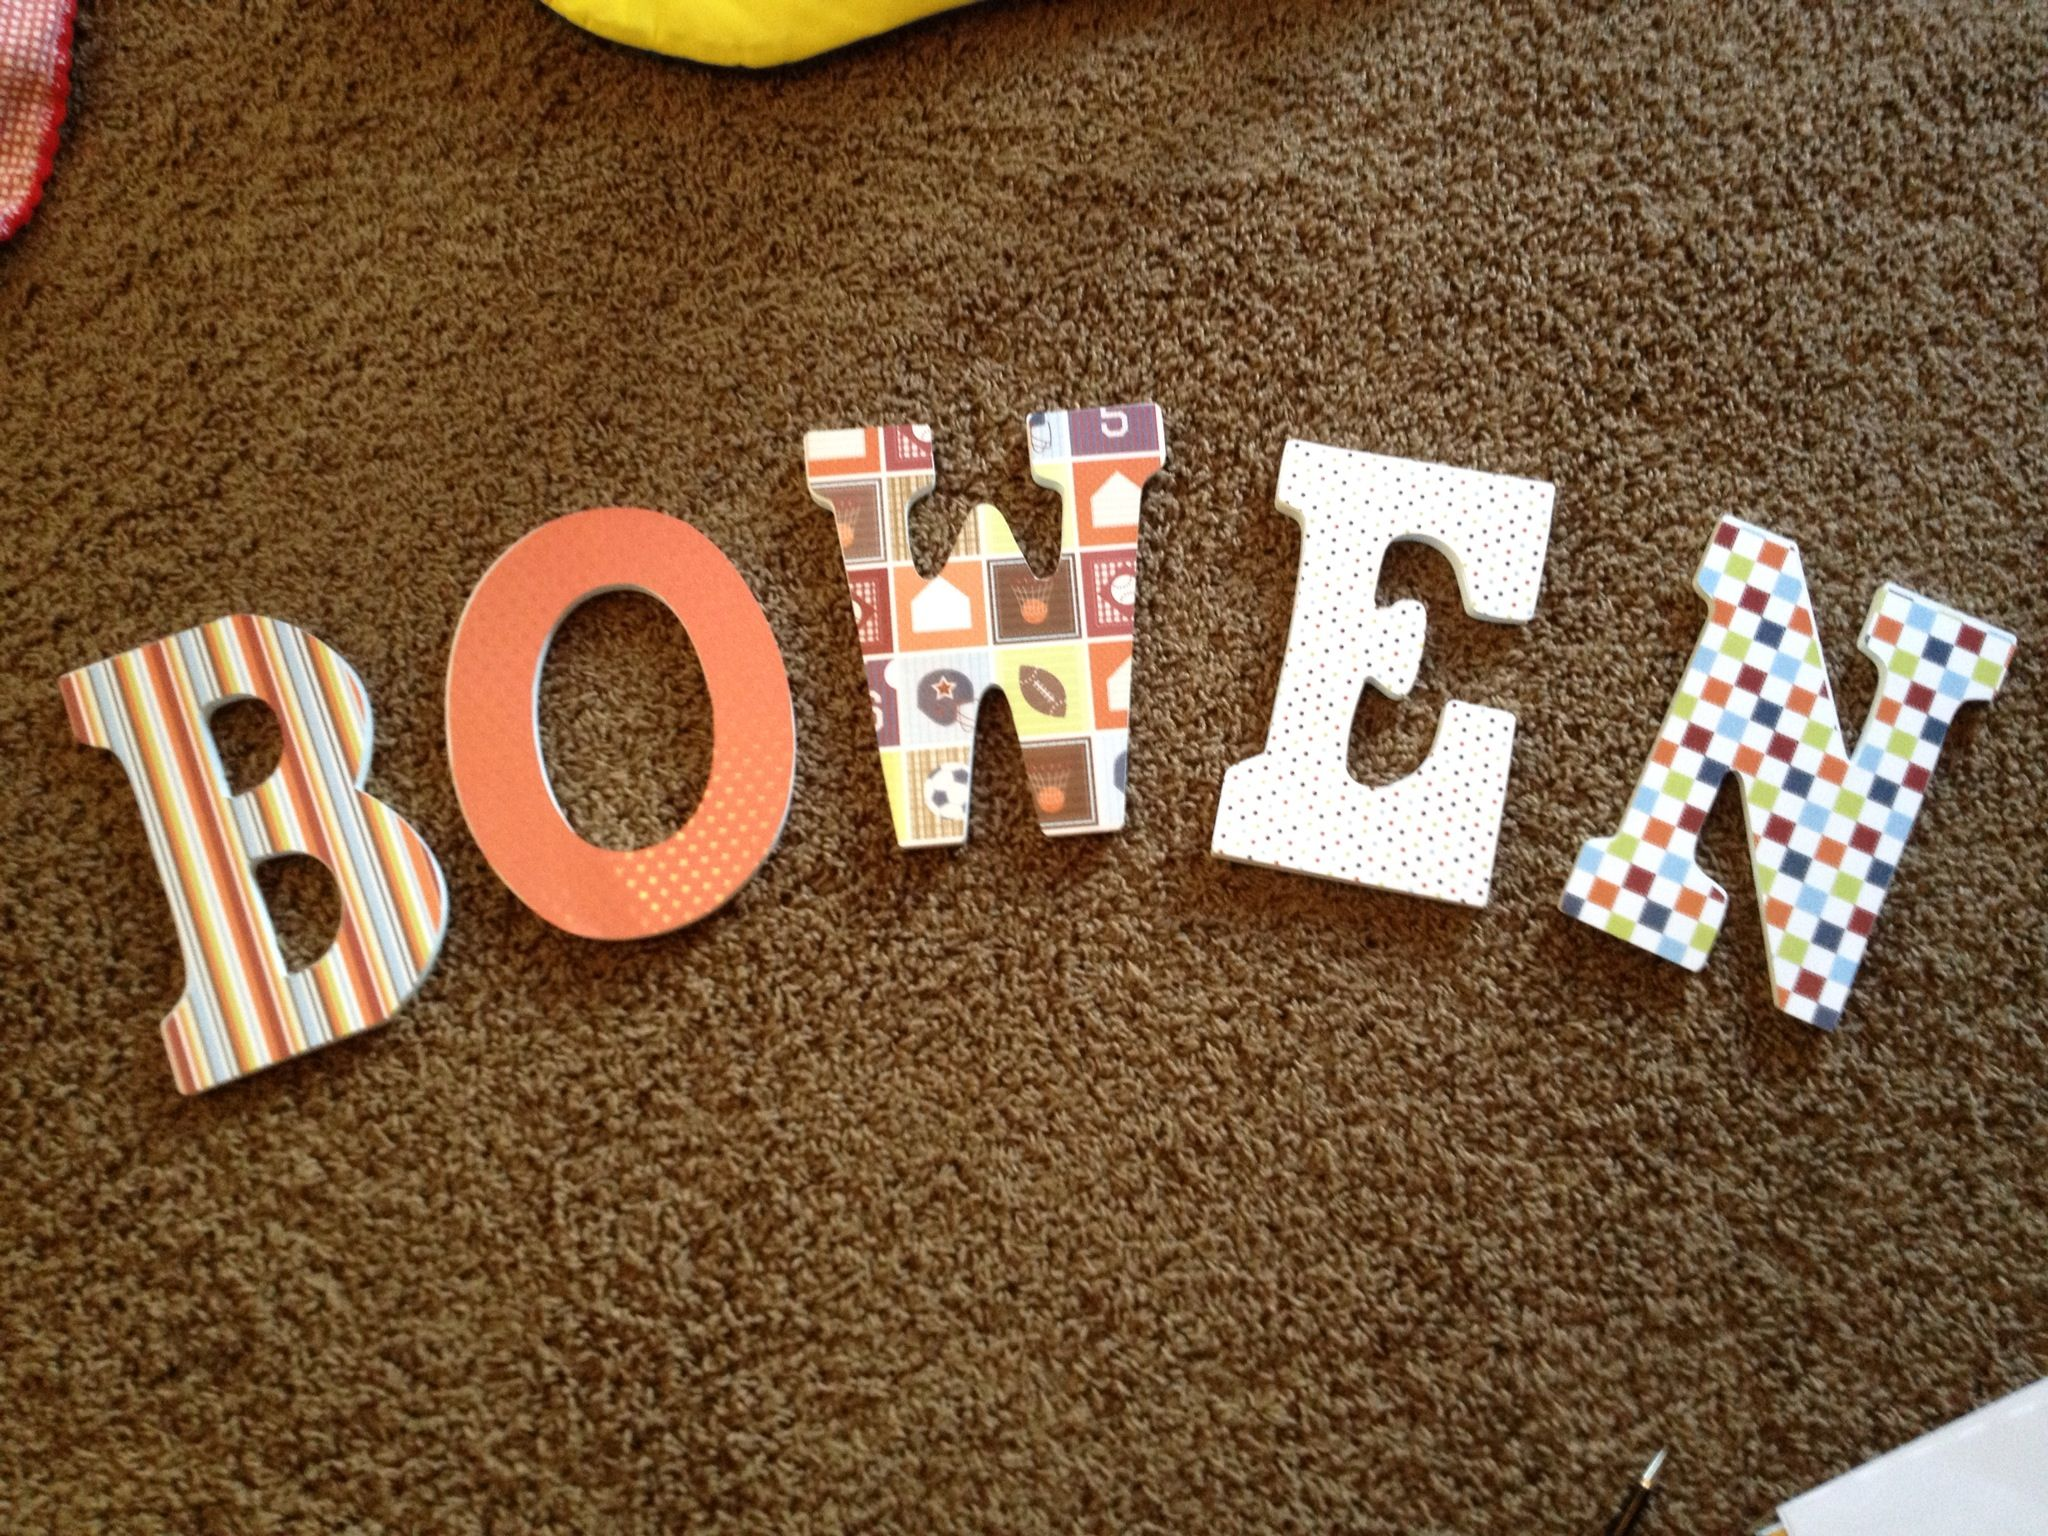 Fun craft for baby's room